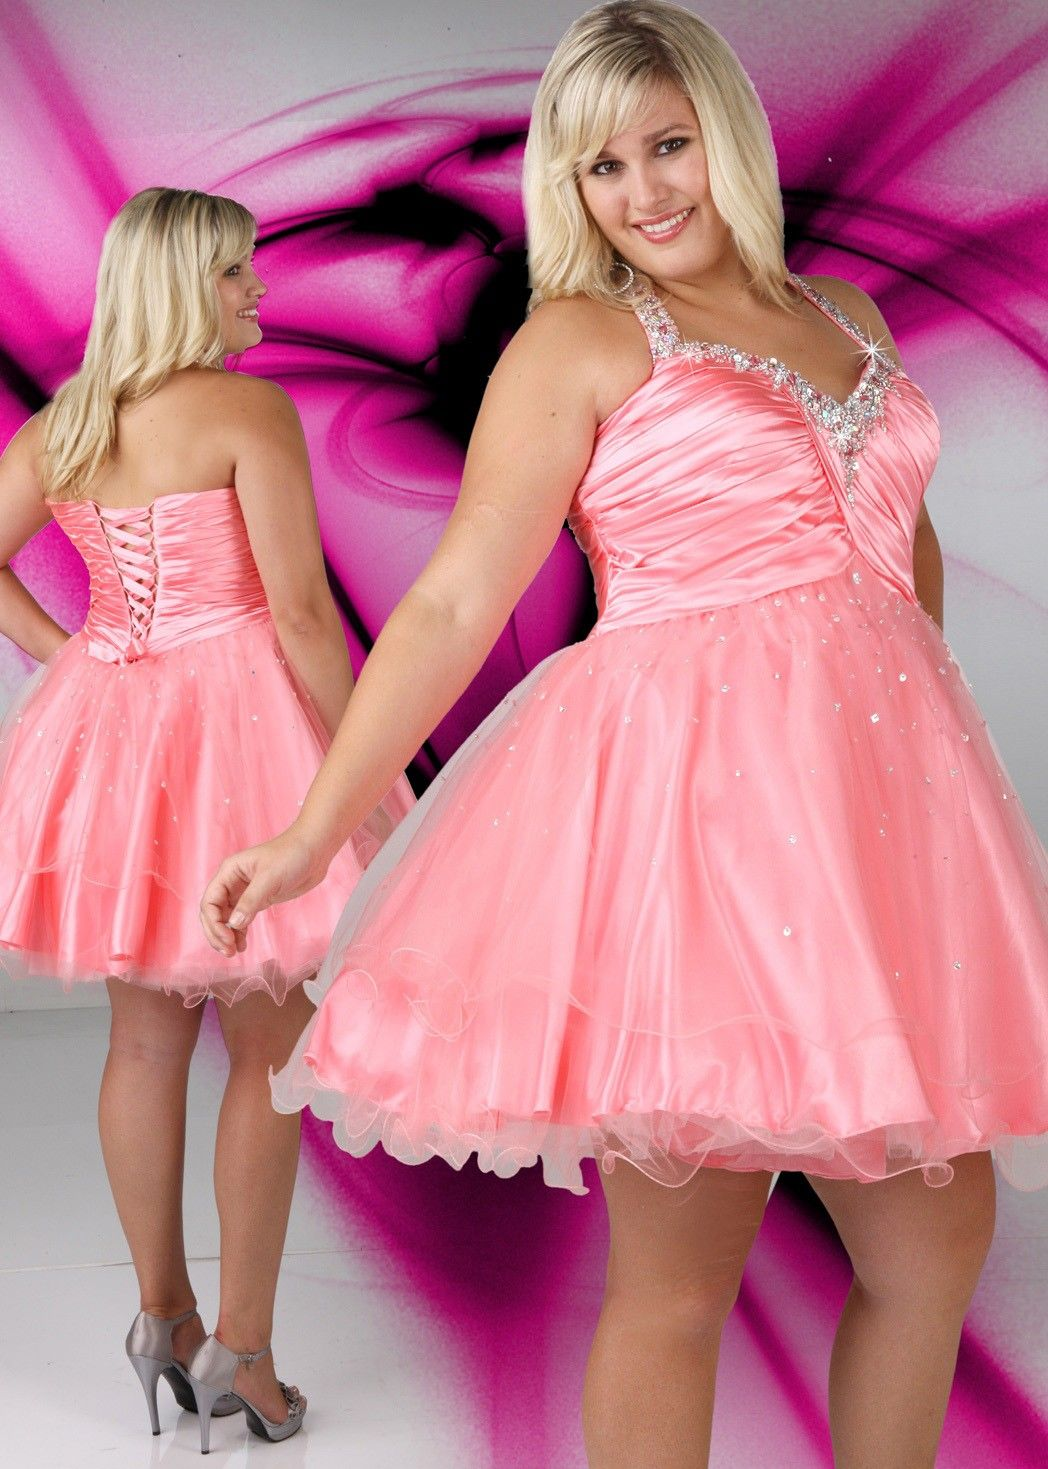 Plus Size Party / Prom Dress $175 They have 14w, 16w and 26w ...